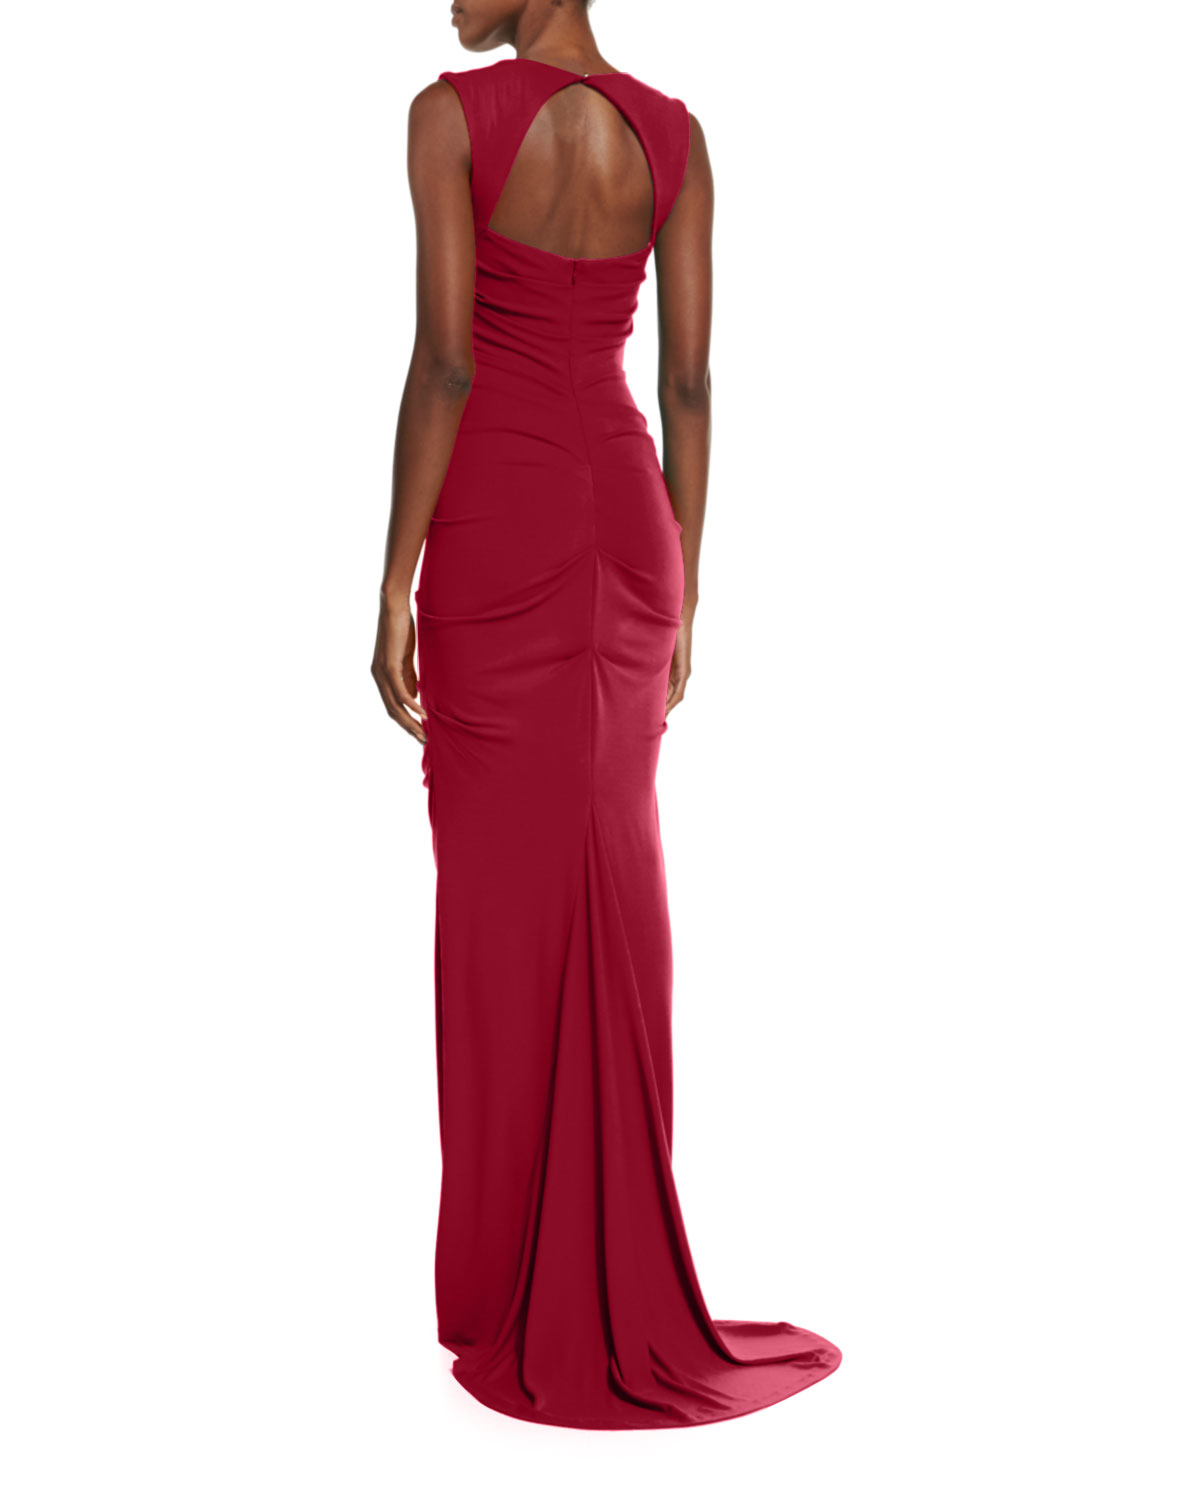 Lyst - Nicole Miller Artelier Sleeveless Ruched Jersey Gown in Red